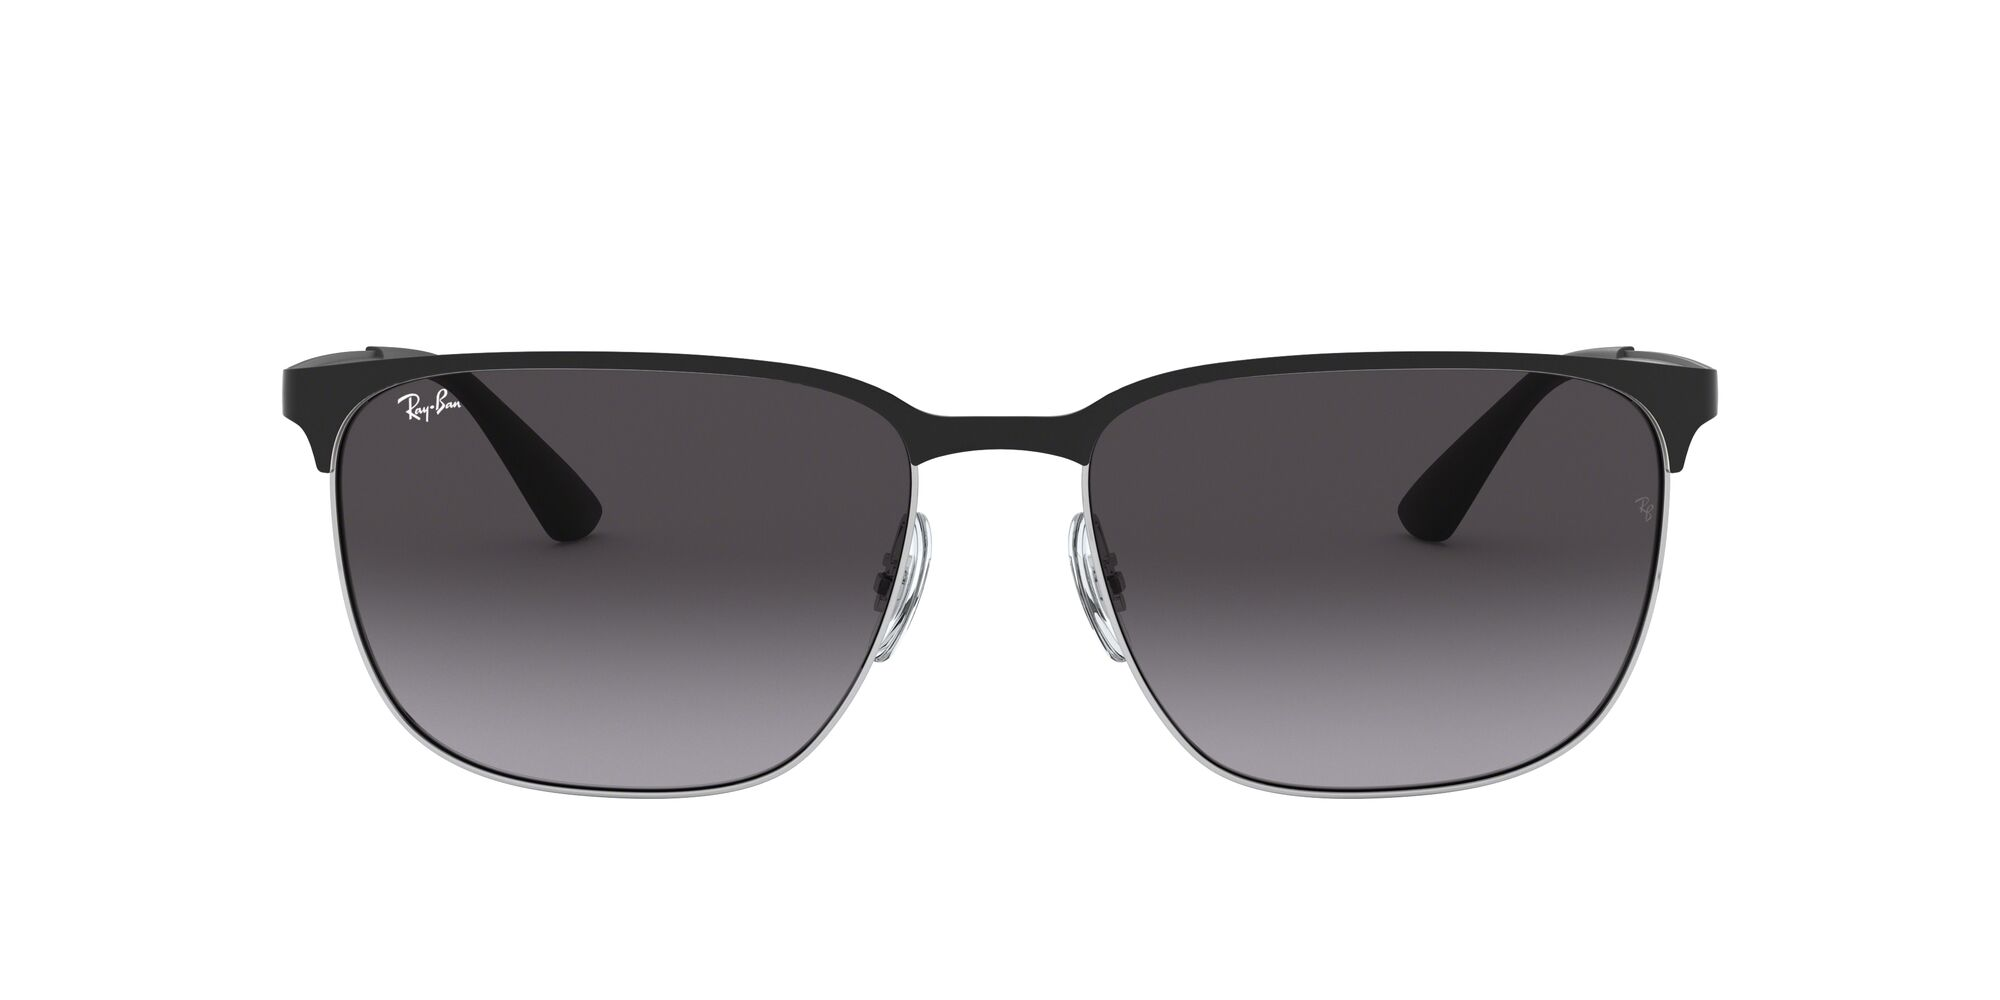 Front Ray-Ban Ray-Ban 0RB3569 90048G 59/17 Zilver/Grijs